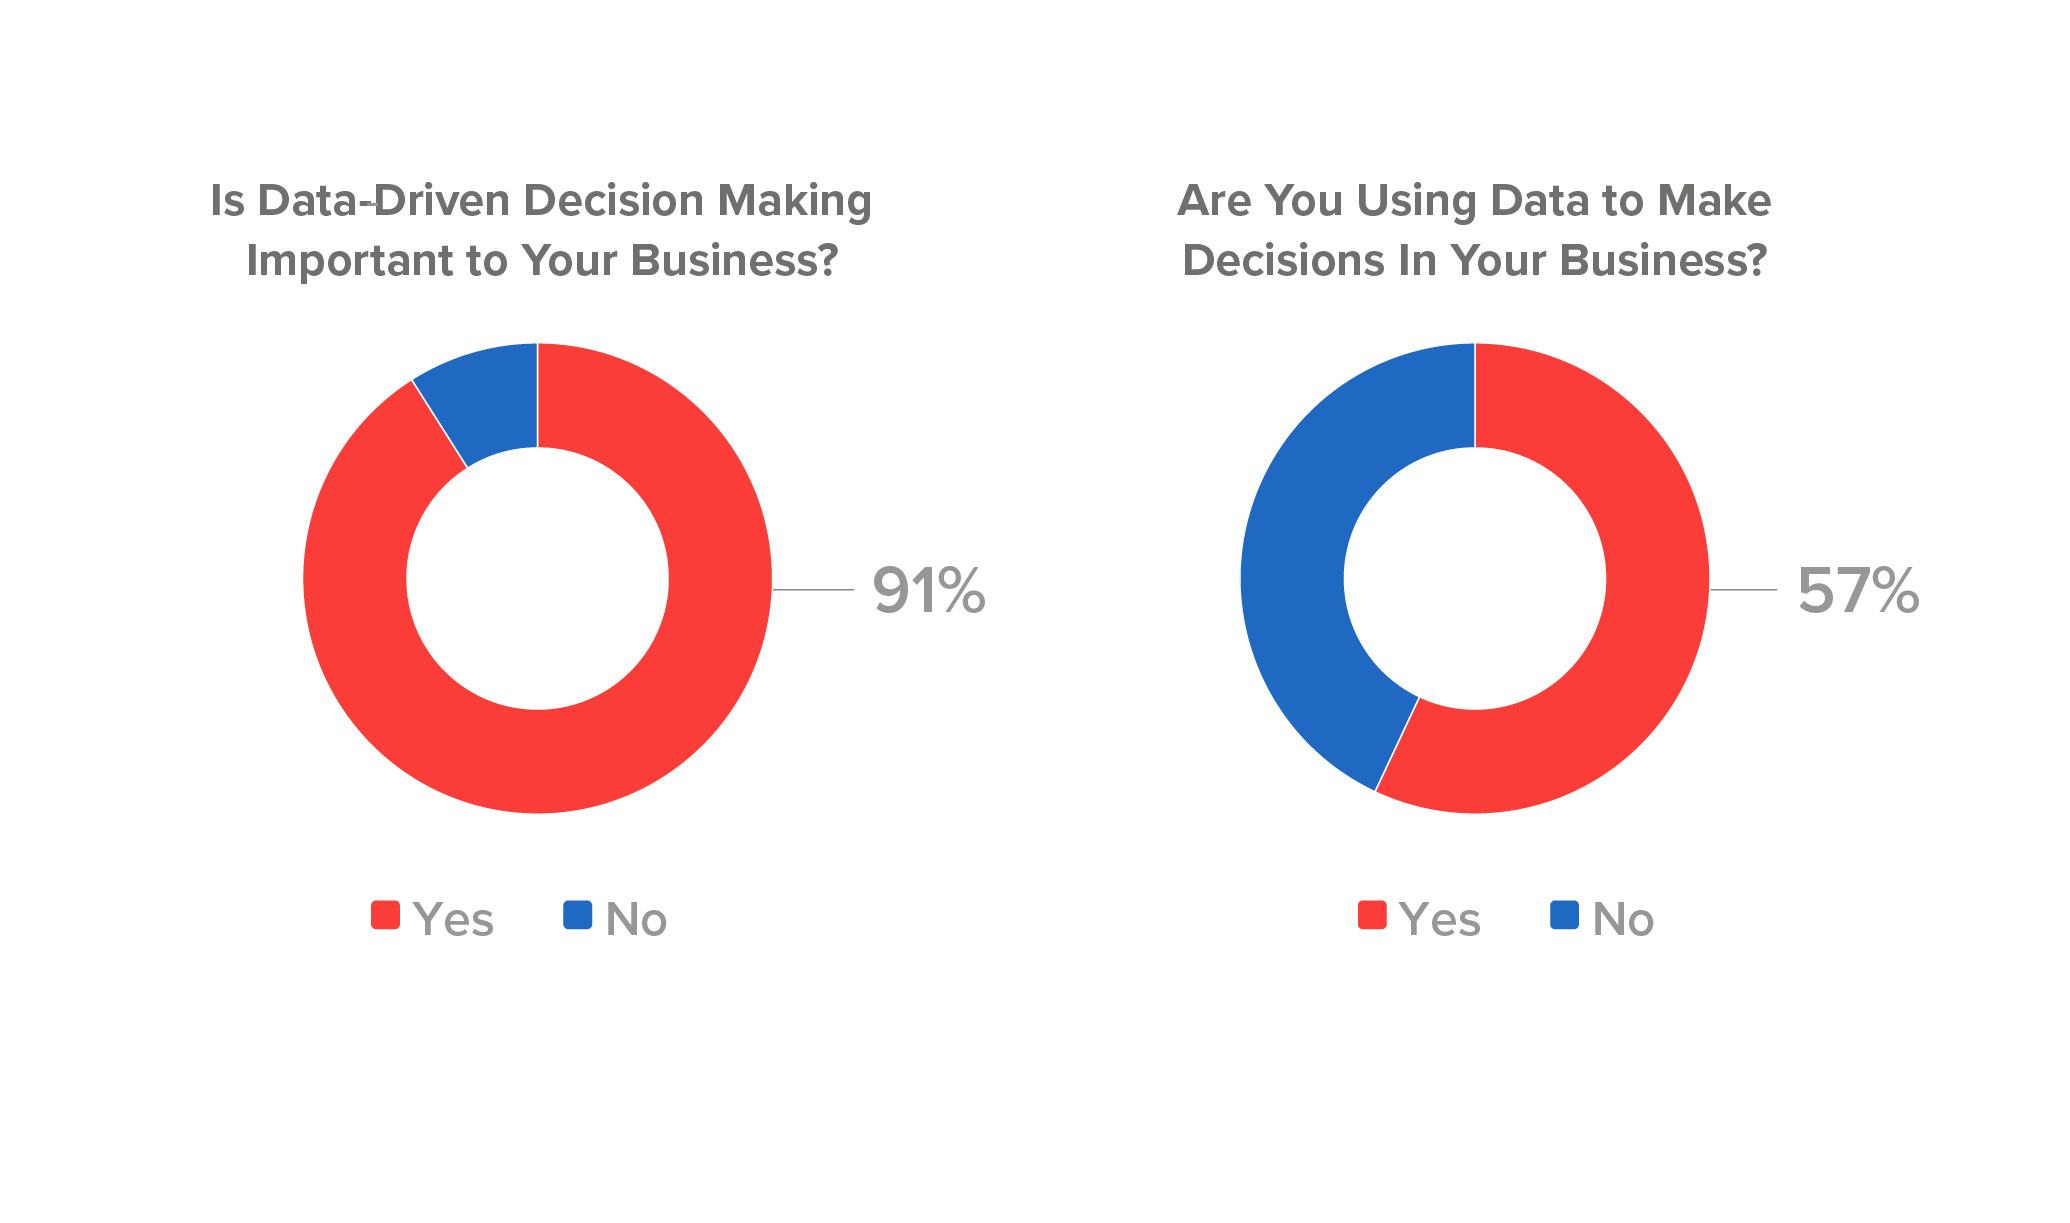 How important is data-driven decision making in your business?